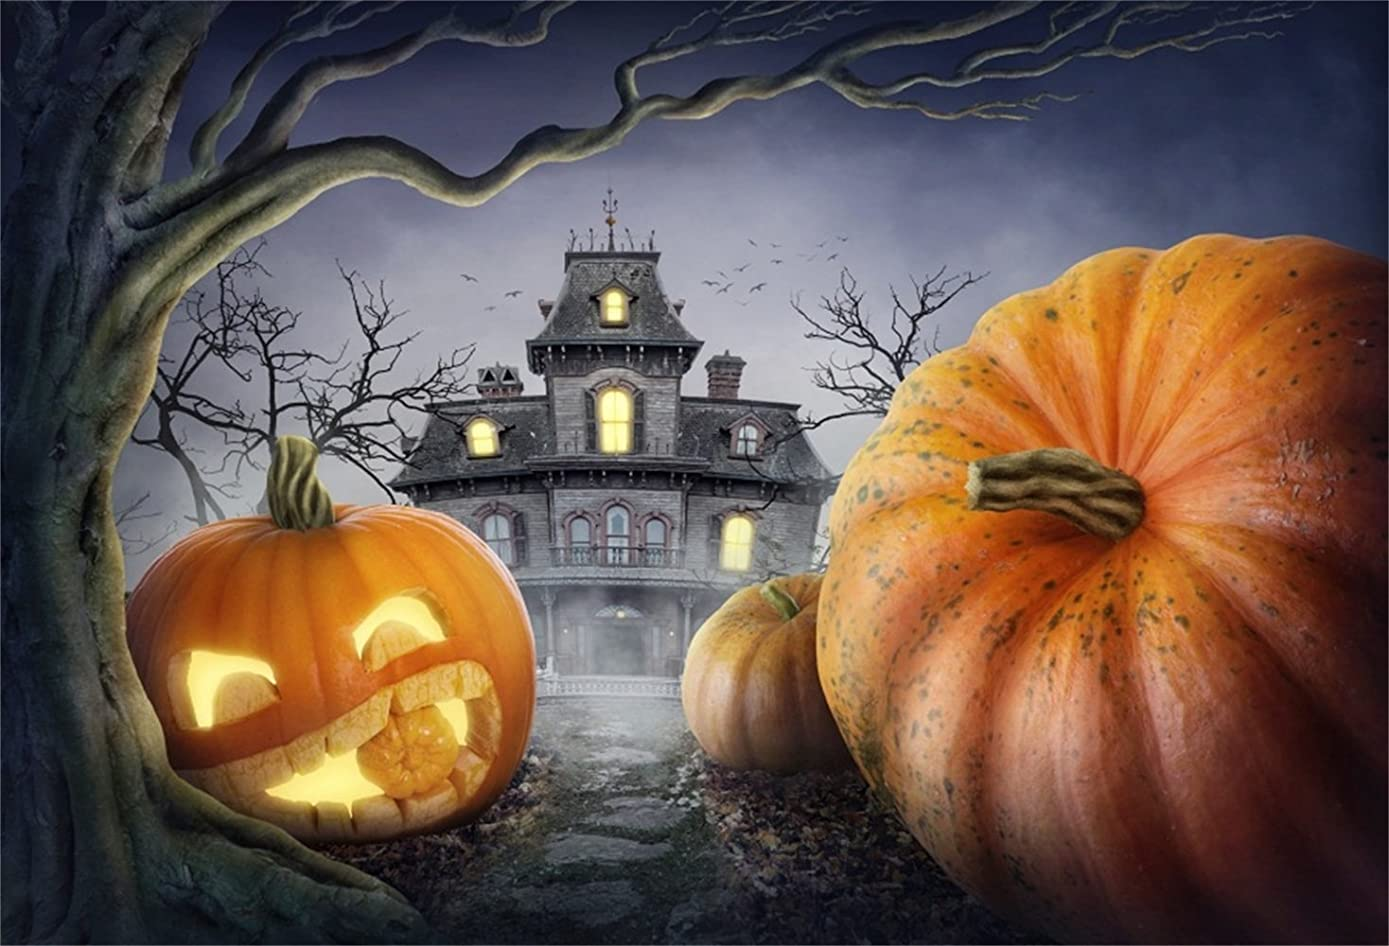 Laeacco Halloween Theme Backdrop 7x5ft Vinyl Photography Background Fairytale Haunted Castle Cute Pumpkin Lamp Decayed Tree Crow Scene Trick or Treat Party Greeting Card Kids Baby Shoot Childishness